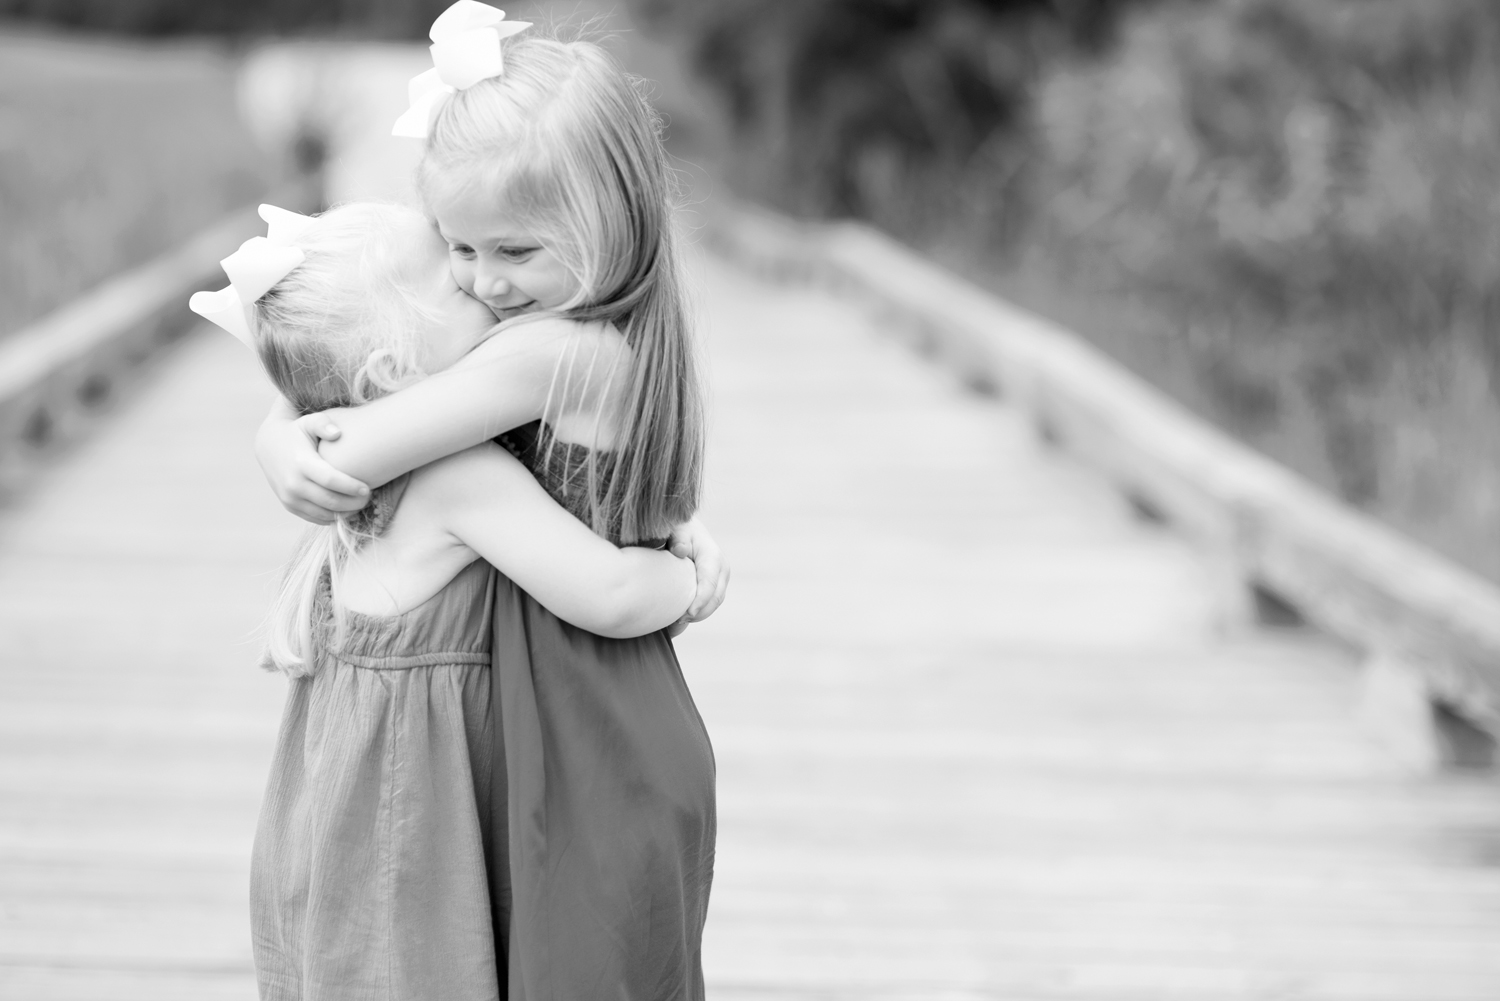 Sisters hugging each other (black and white)